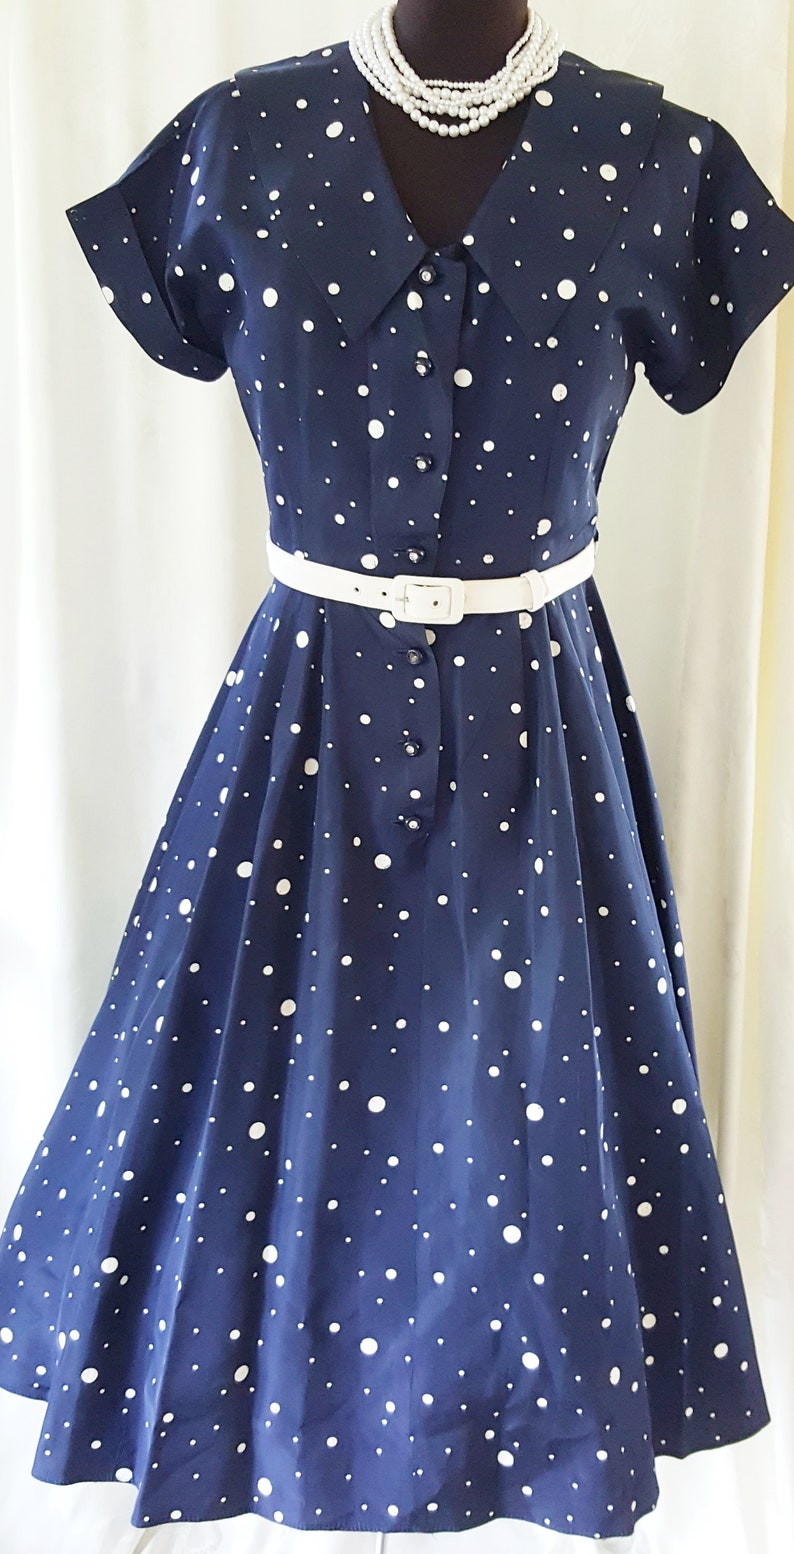 500 Vintage Style Dresses for Sale | Vintage Inspired Dresses BUBBLY HAPPY Polka Dot Classic from the 1950s SophisticatedLaRue $88.00 AT vintagedancer.com